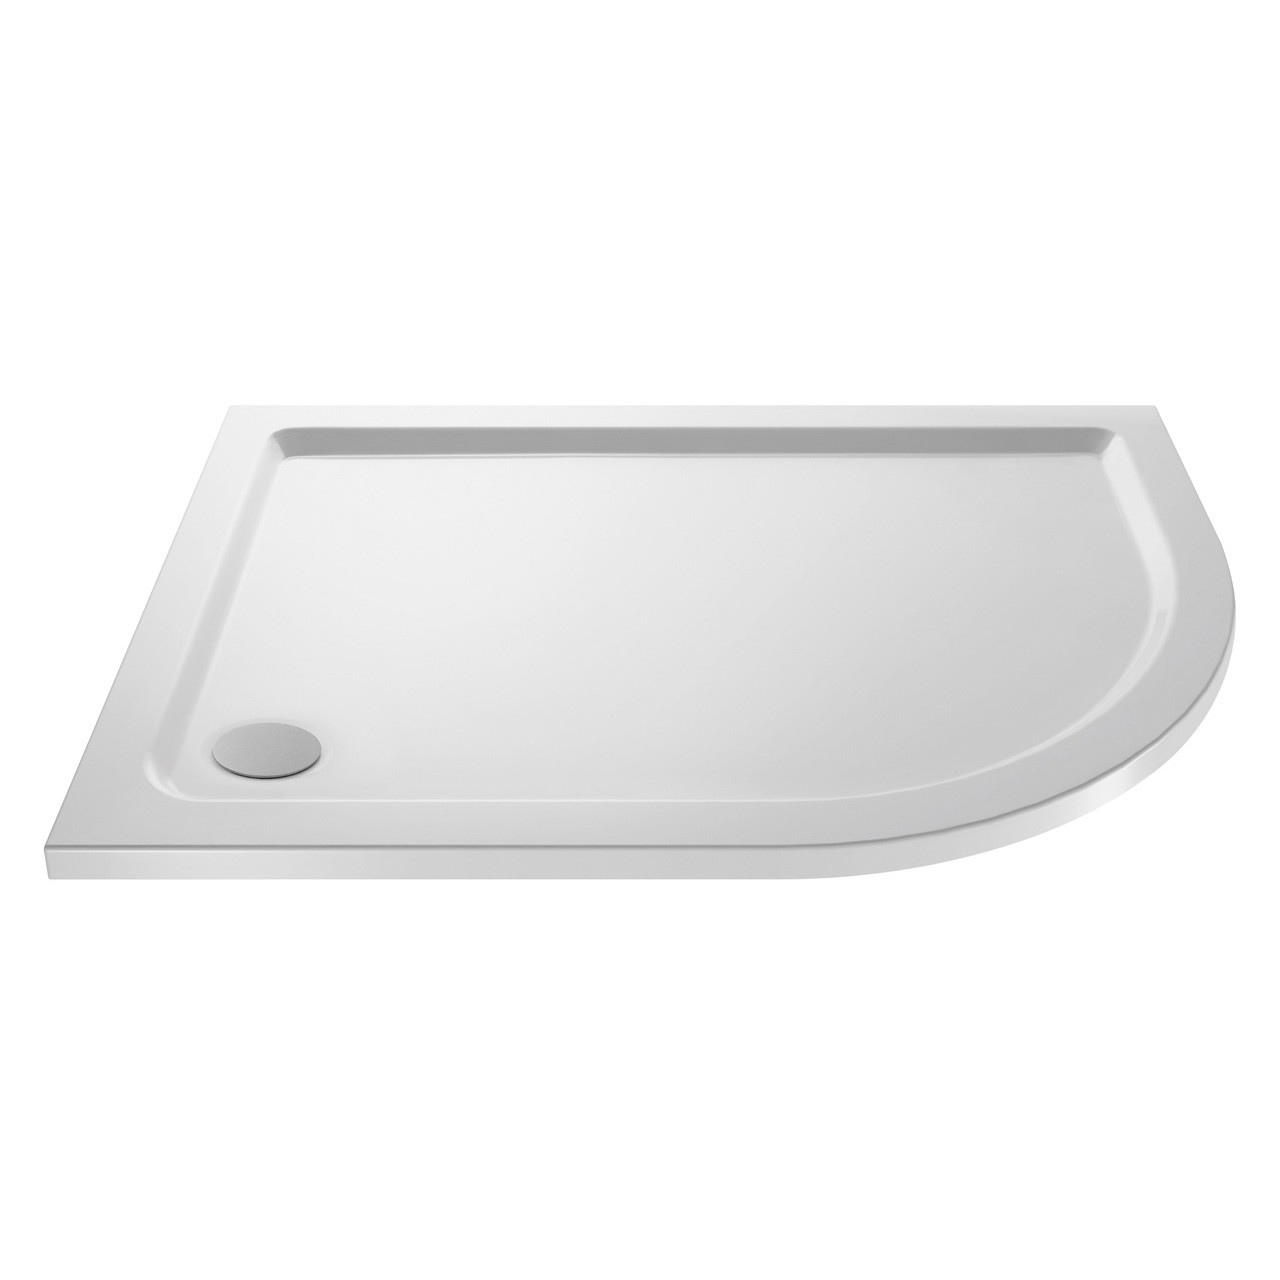 Nuie Pearlstone 1200mm x 900mm Right Hand Offset Quadrant Shower Tray - NTP115